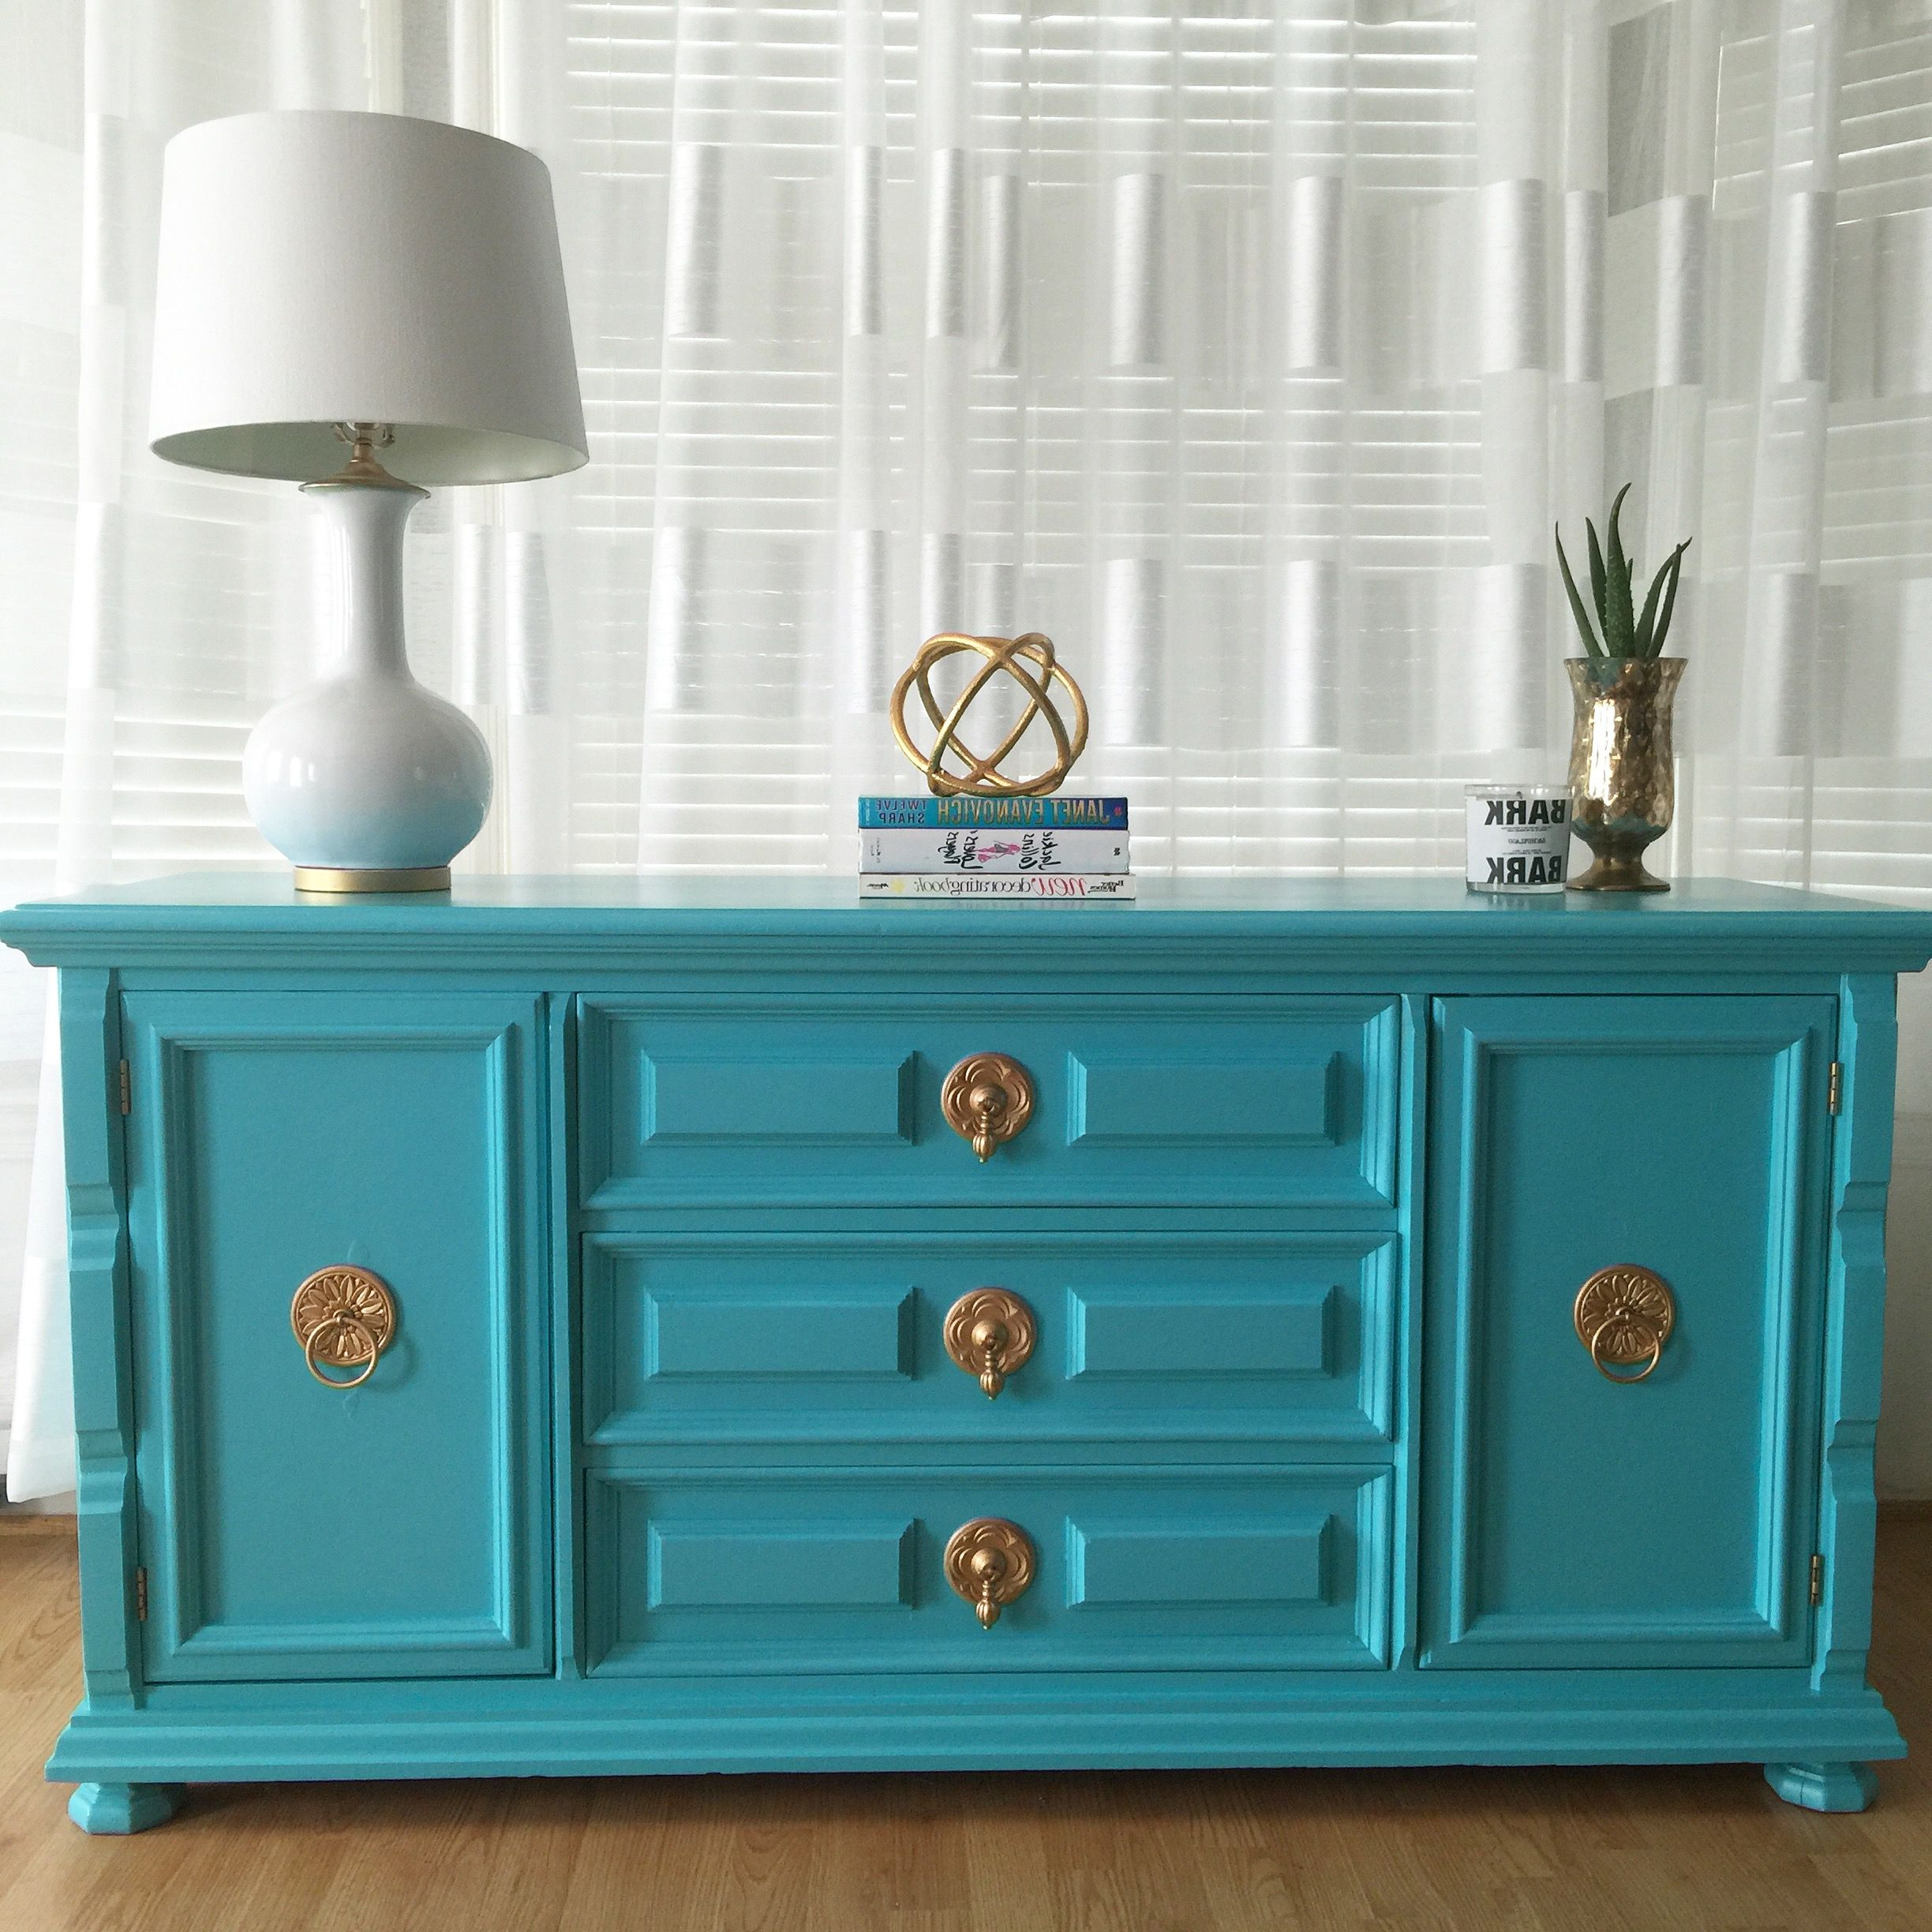 Hollywood Regency Credenza Sideboard Console Using High Intended For Deep Blue Fern Credenzas (View 20 of 20)